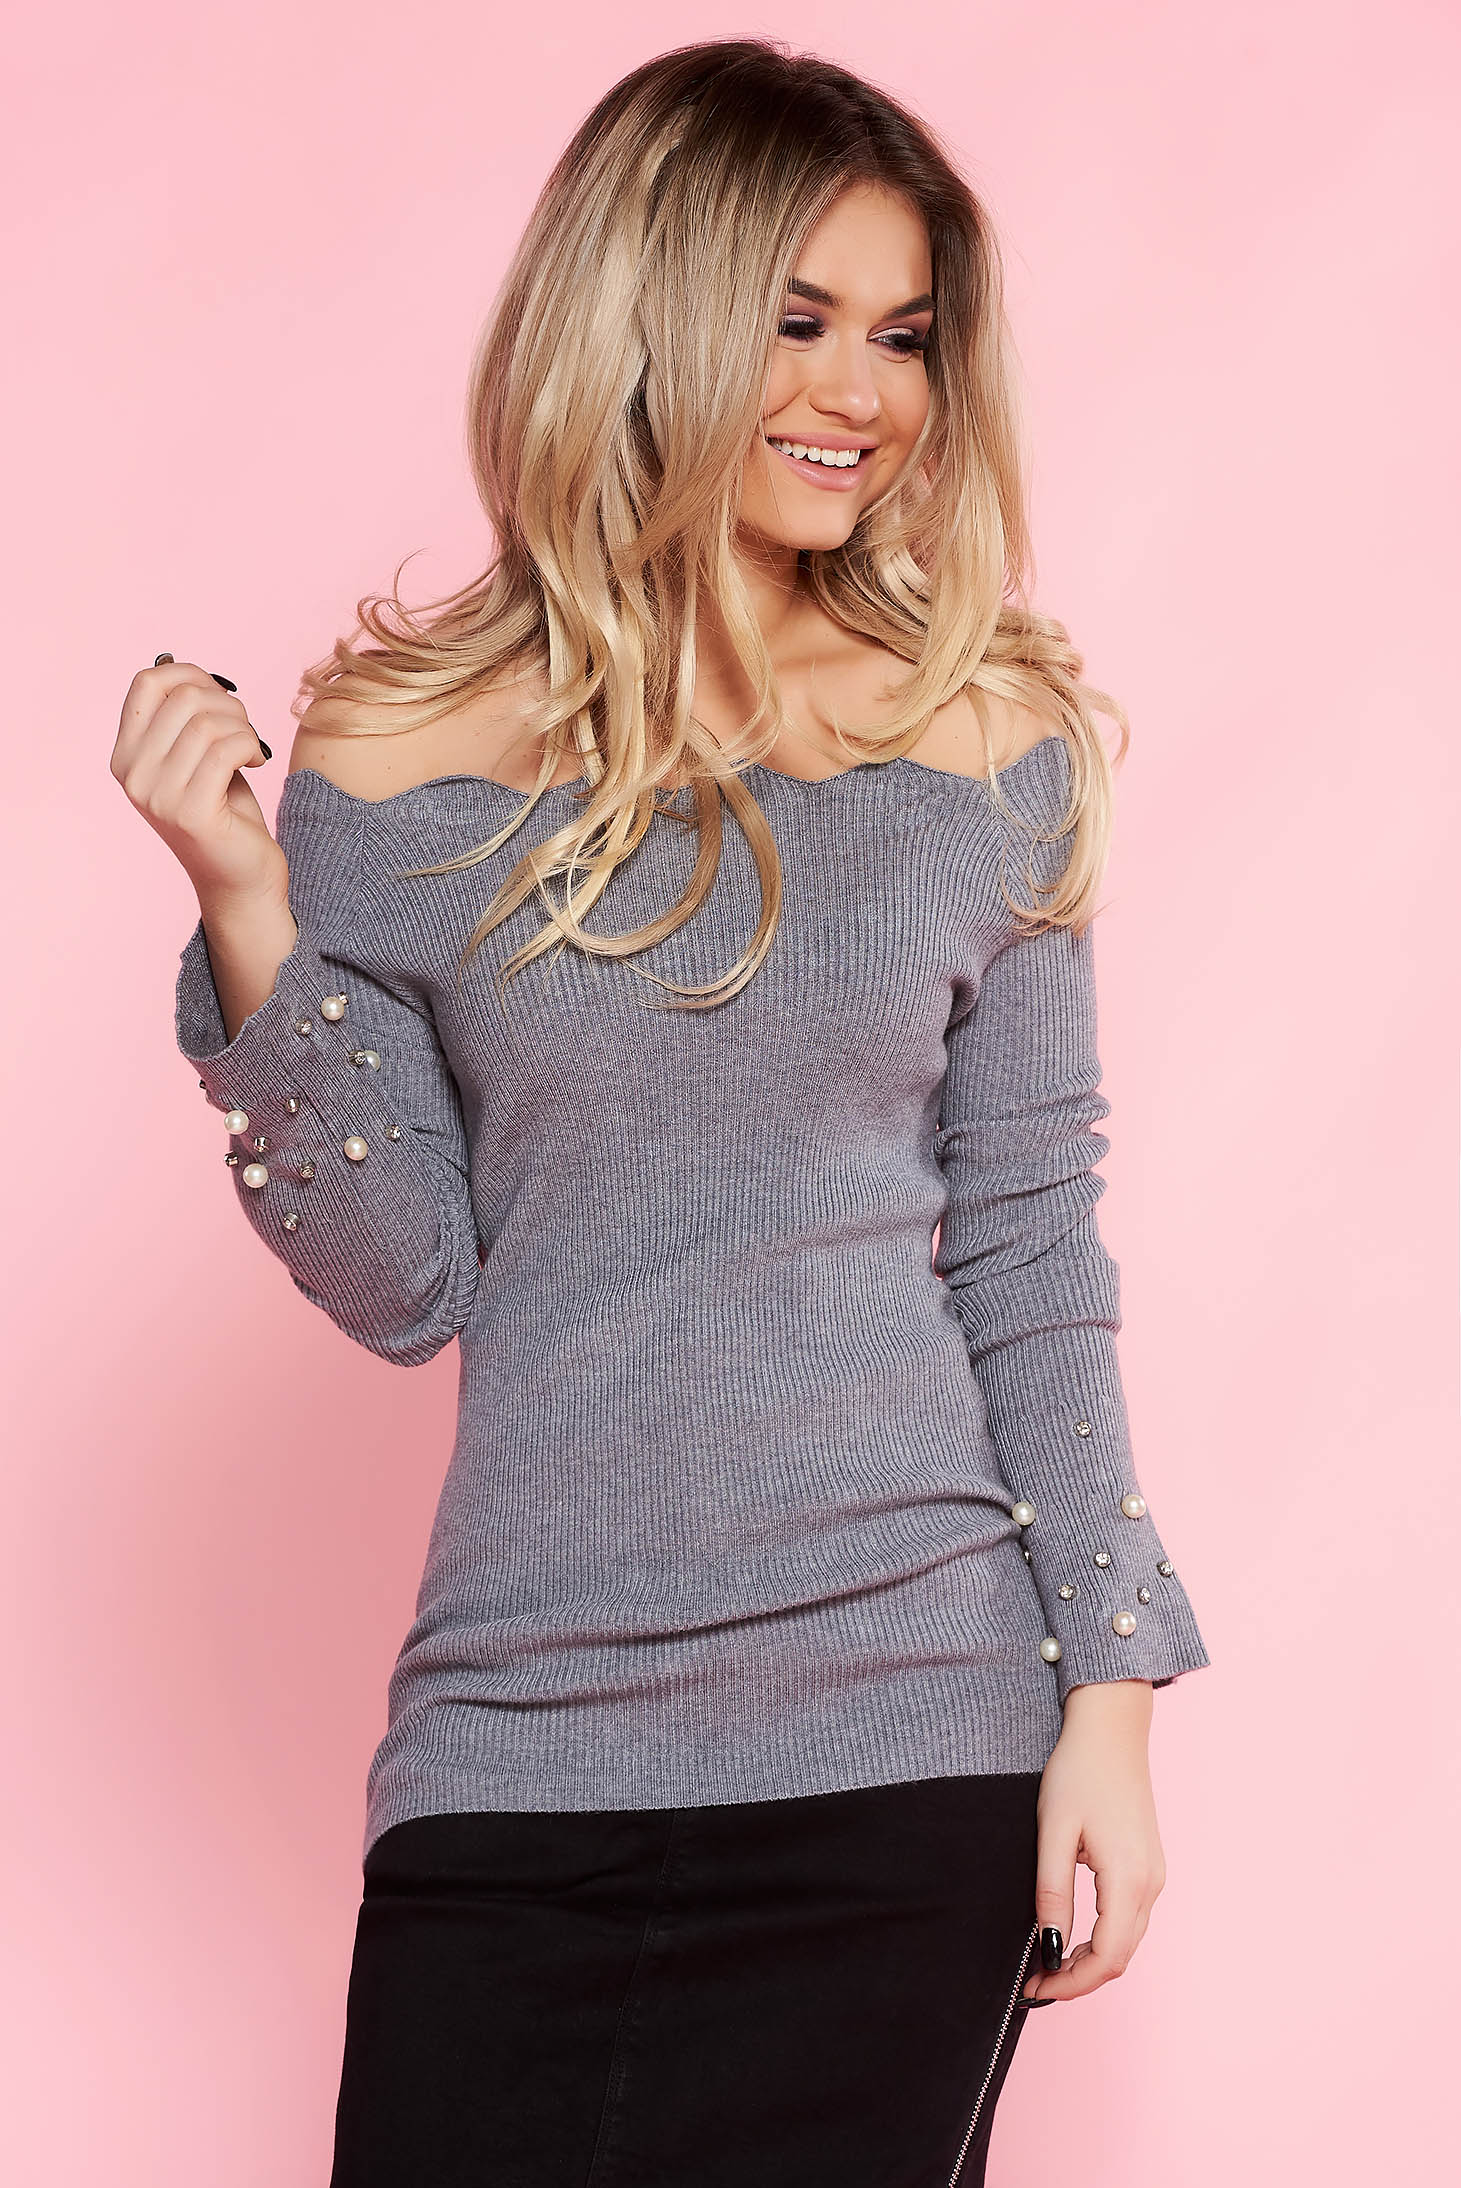 SunShine grey casual sweater with tented cut knitted fabric with pearls